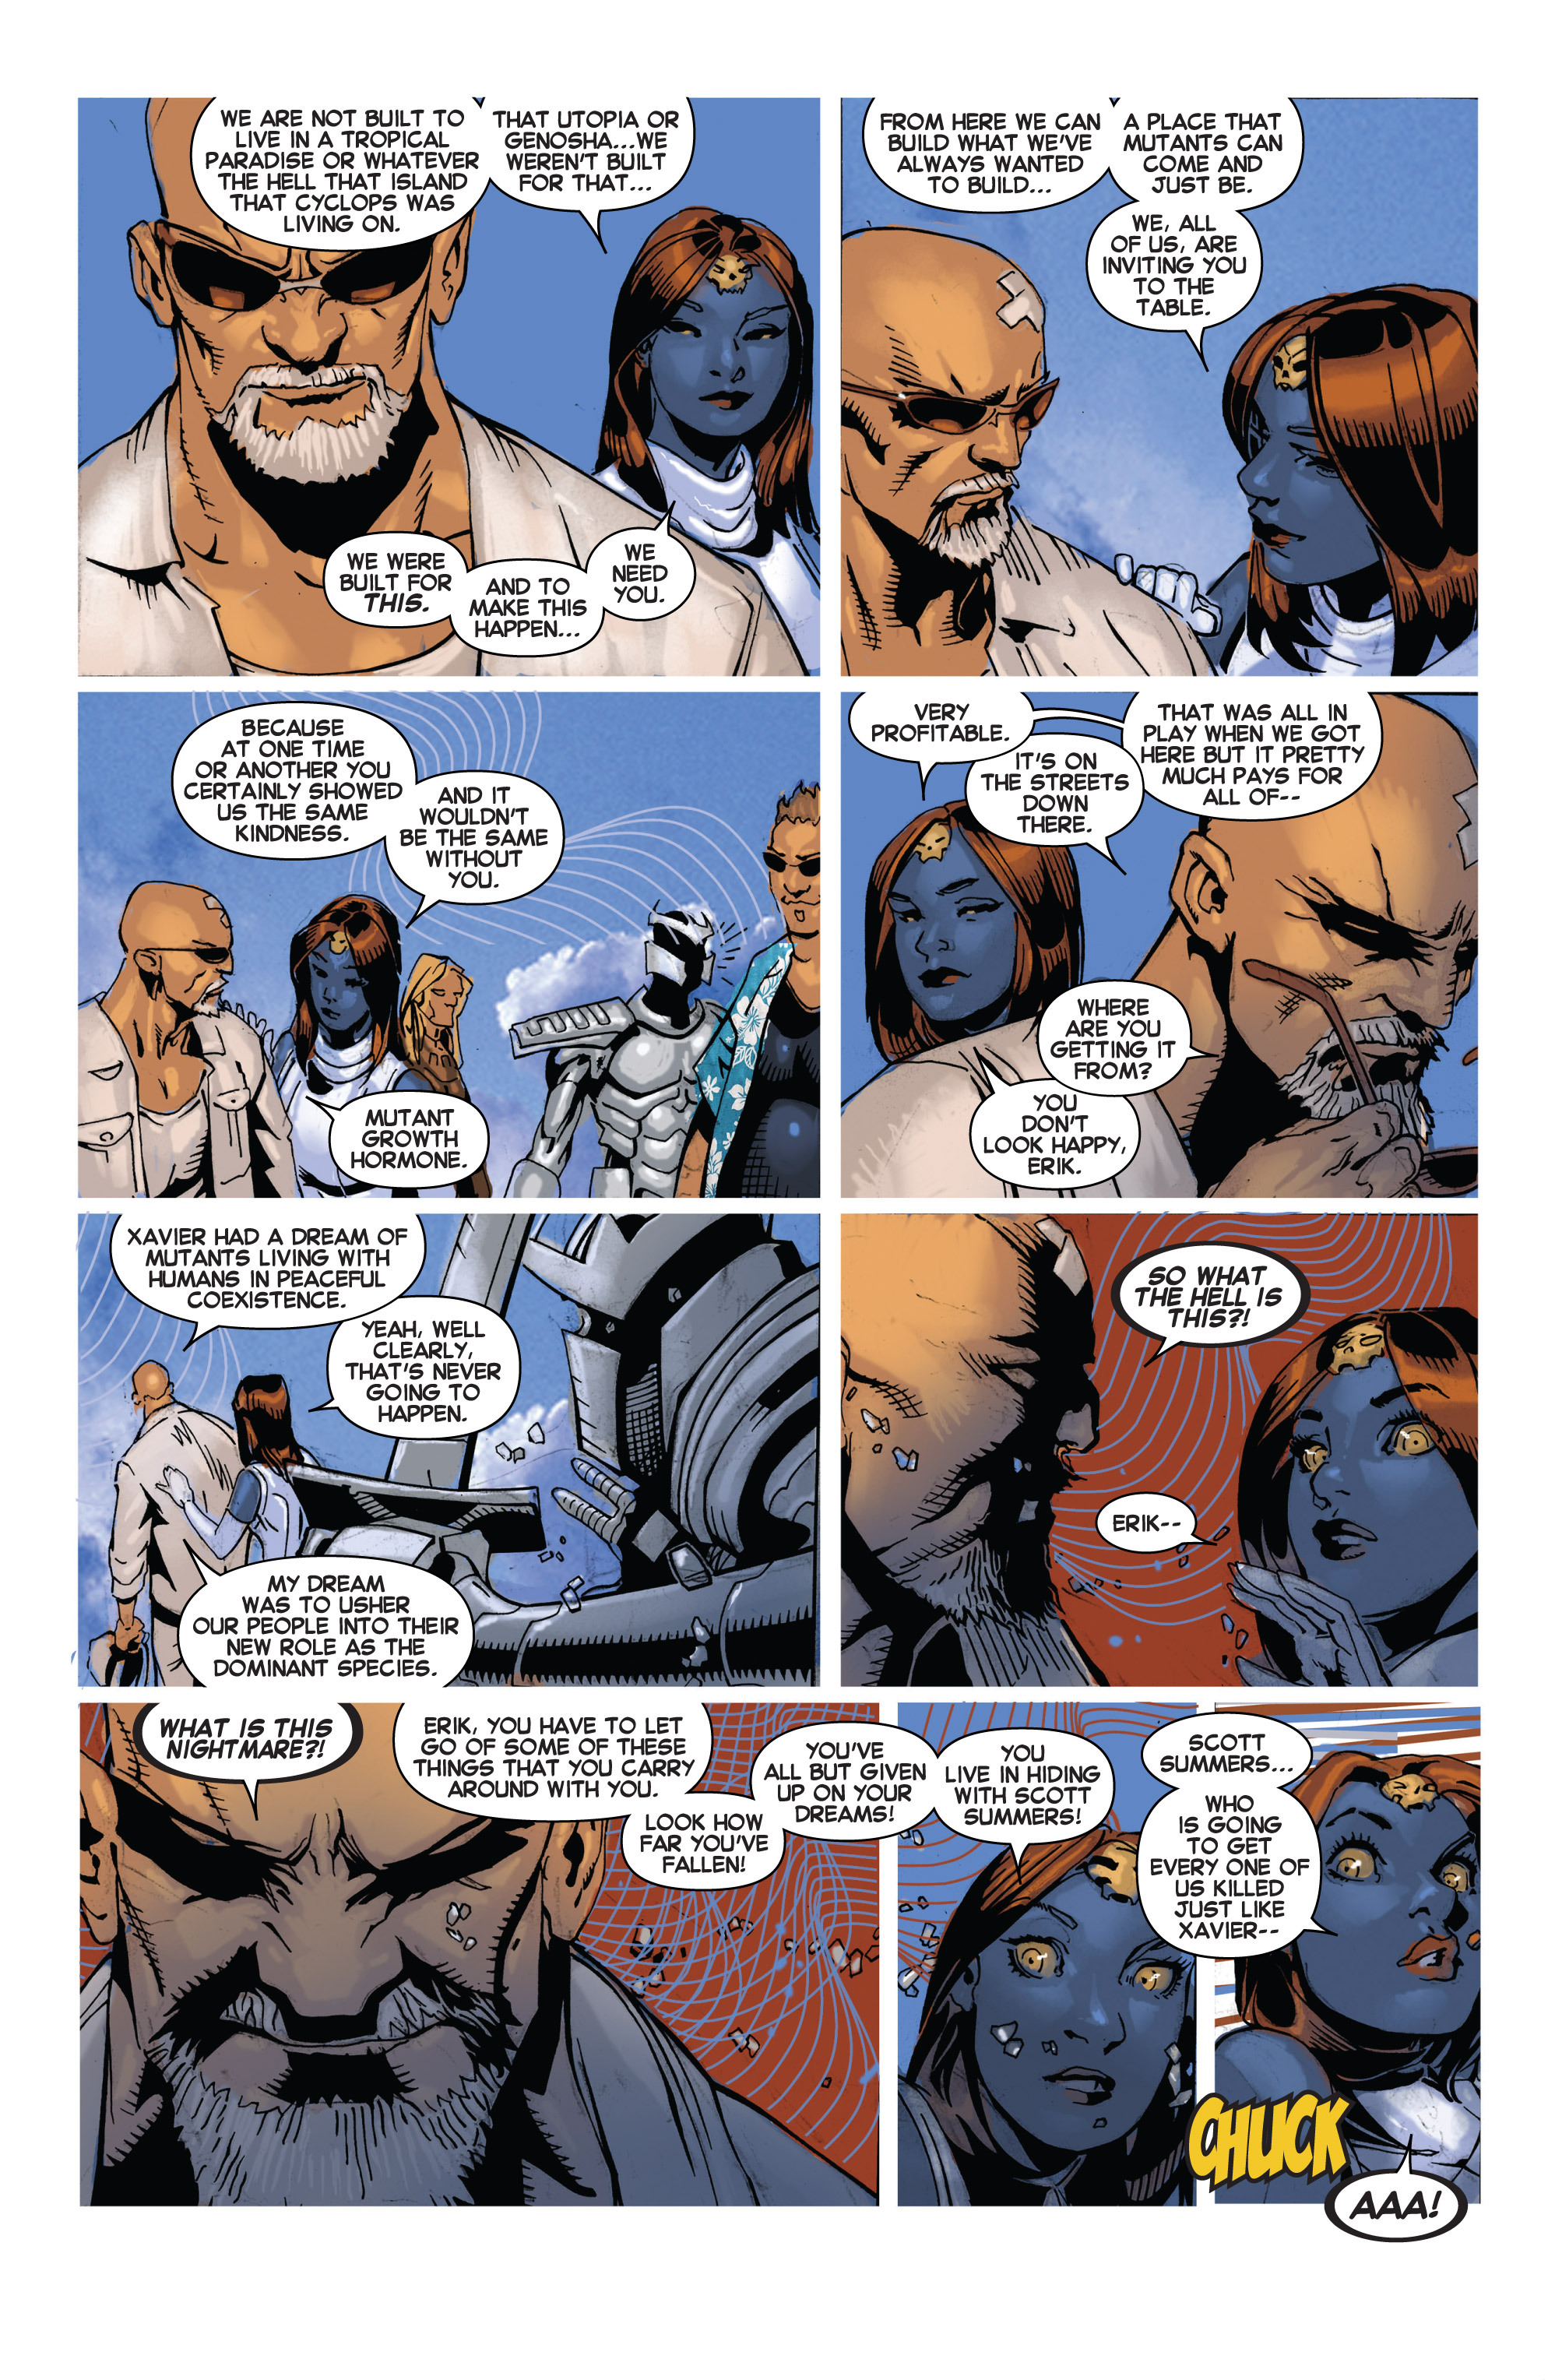 Read online Uncanny X-Men (2013) comic -  Issue # _TPB 3 - The Good, The Bad, The Inhuman - 59